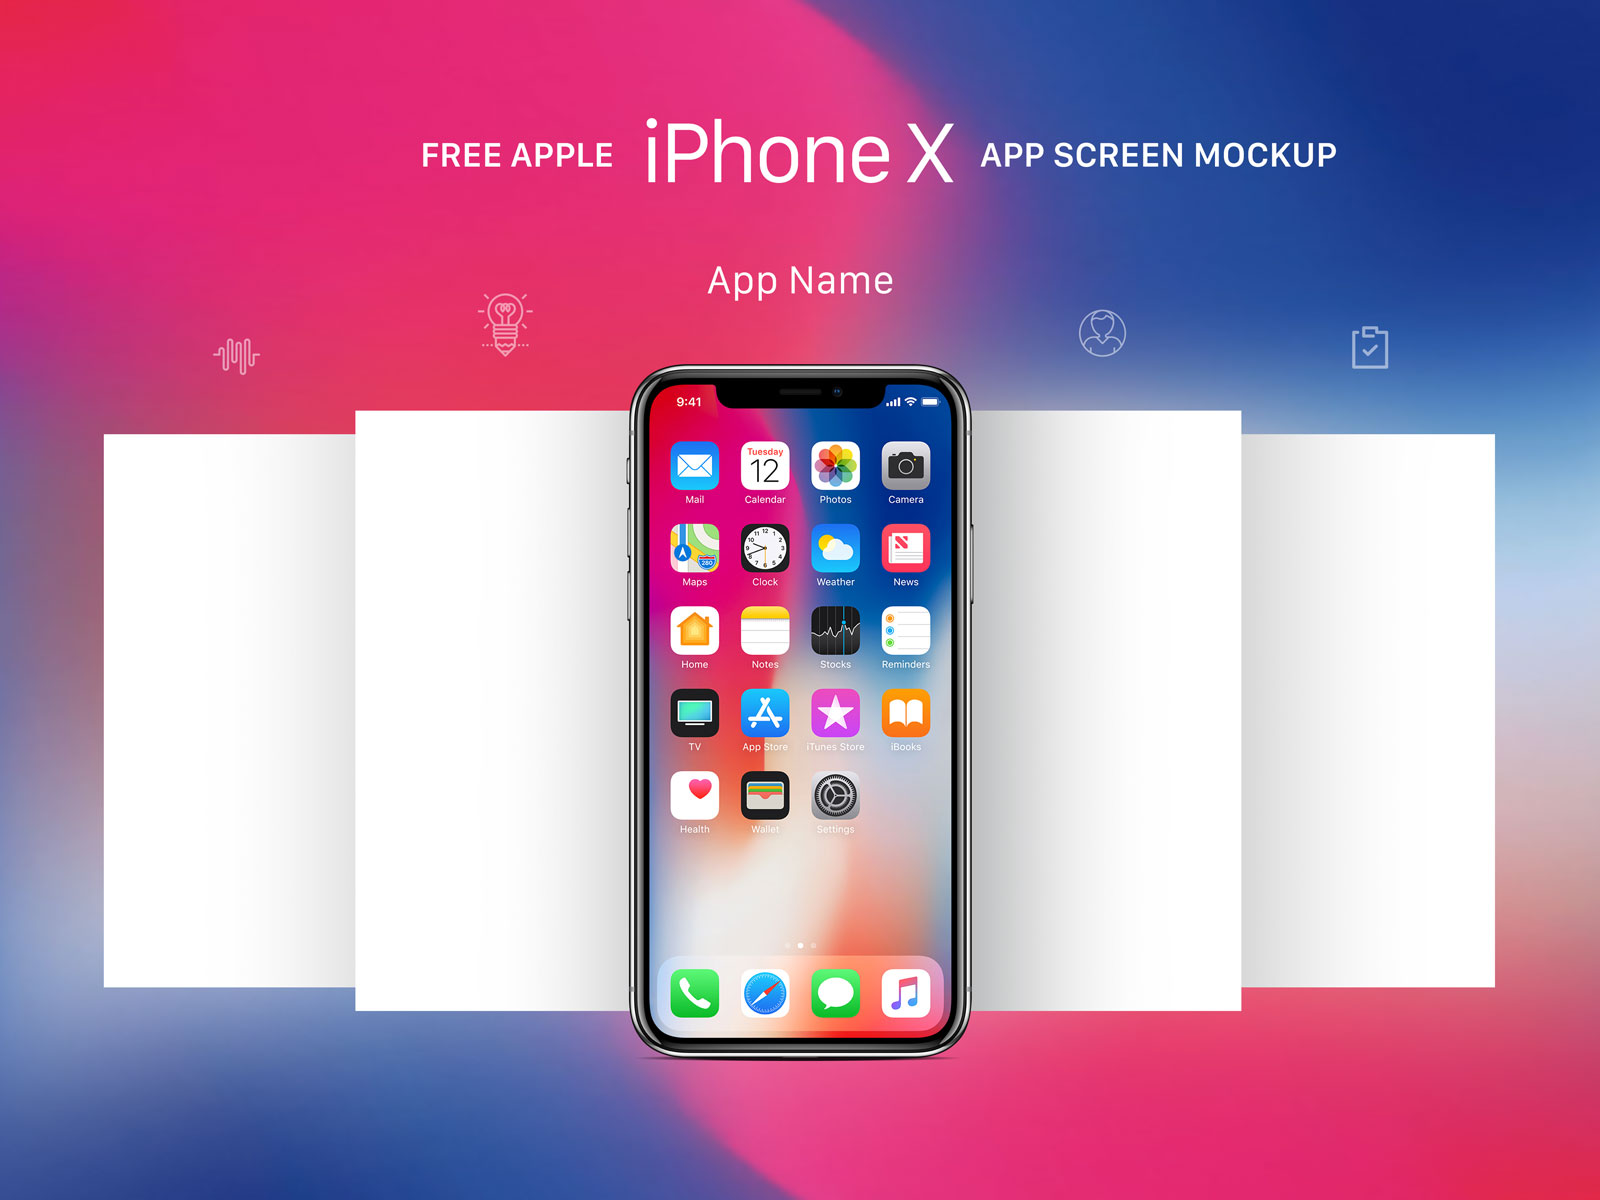 Free apple iphone x app screen mockup psd good mockups for Iphone picture apps free